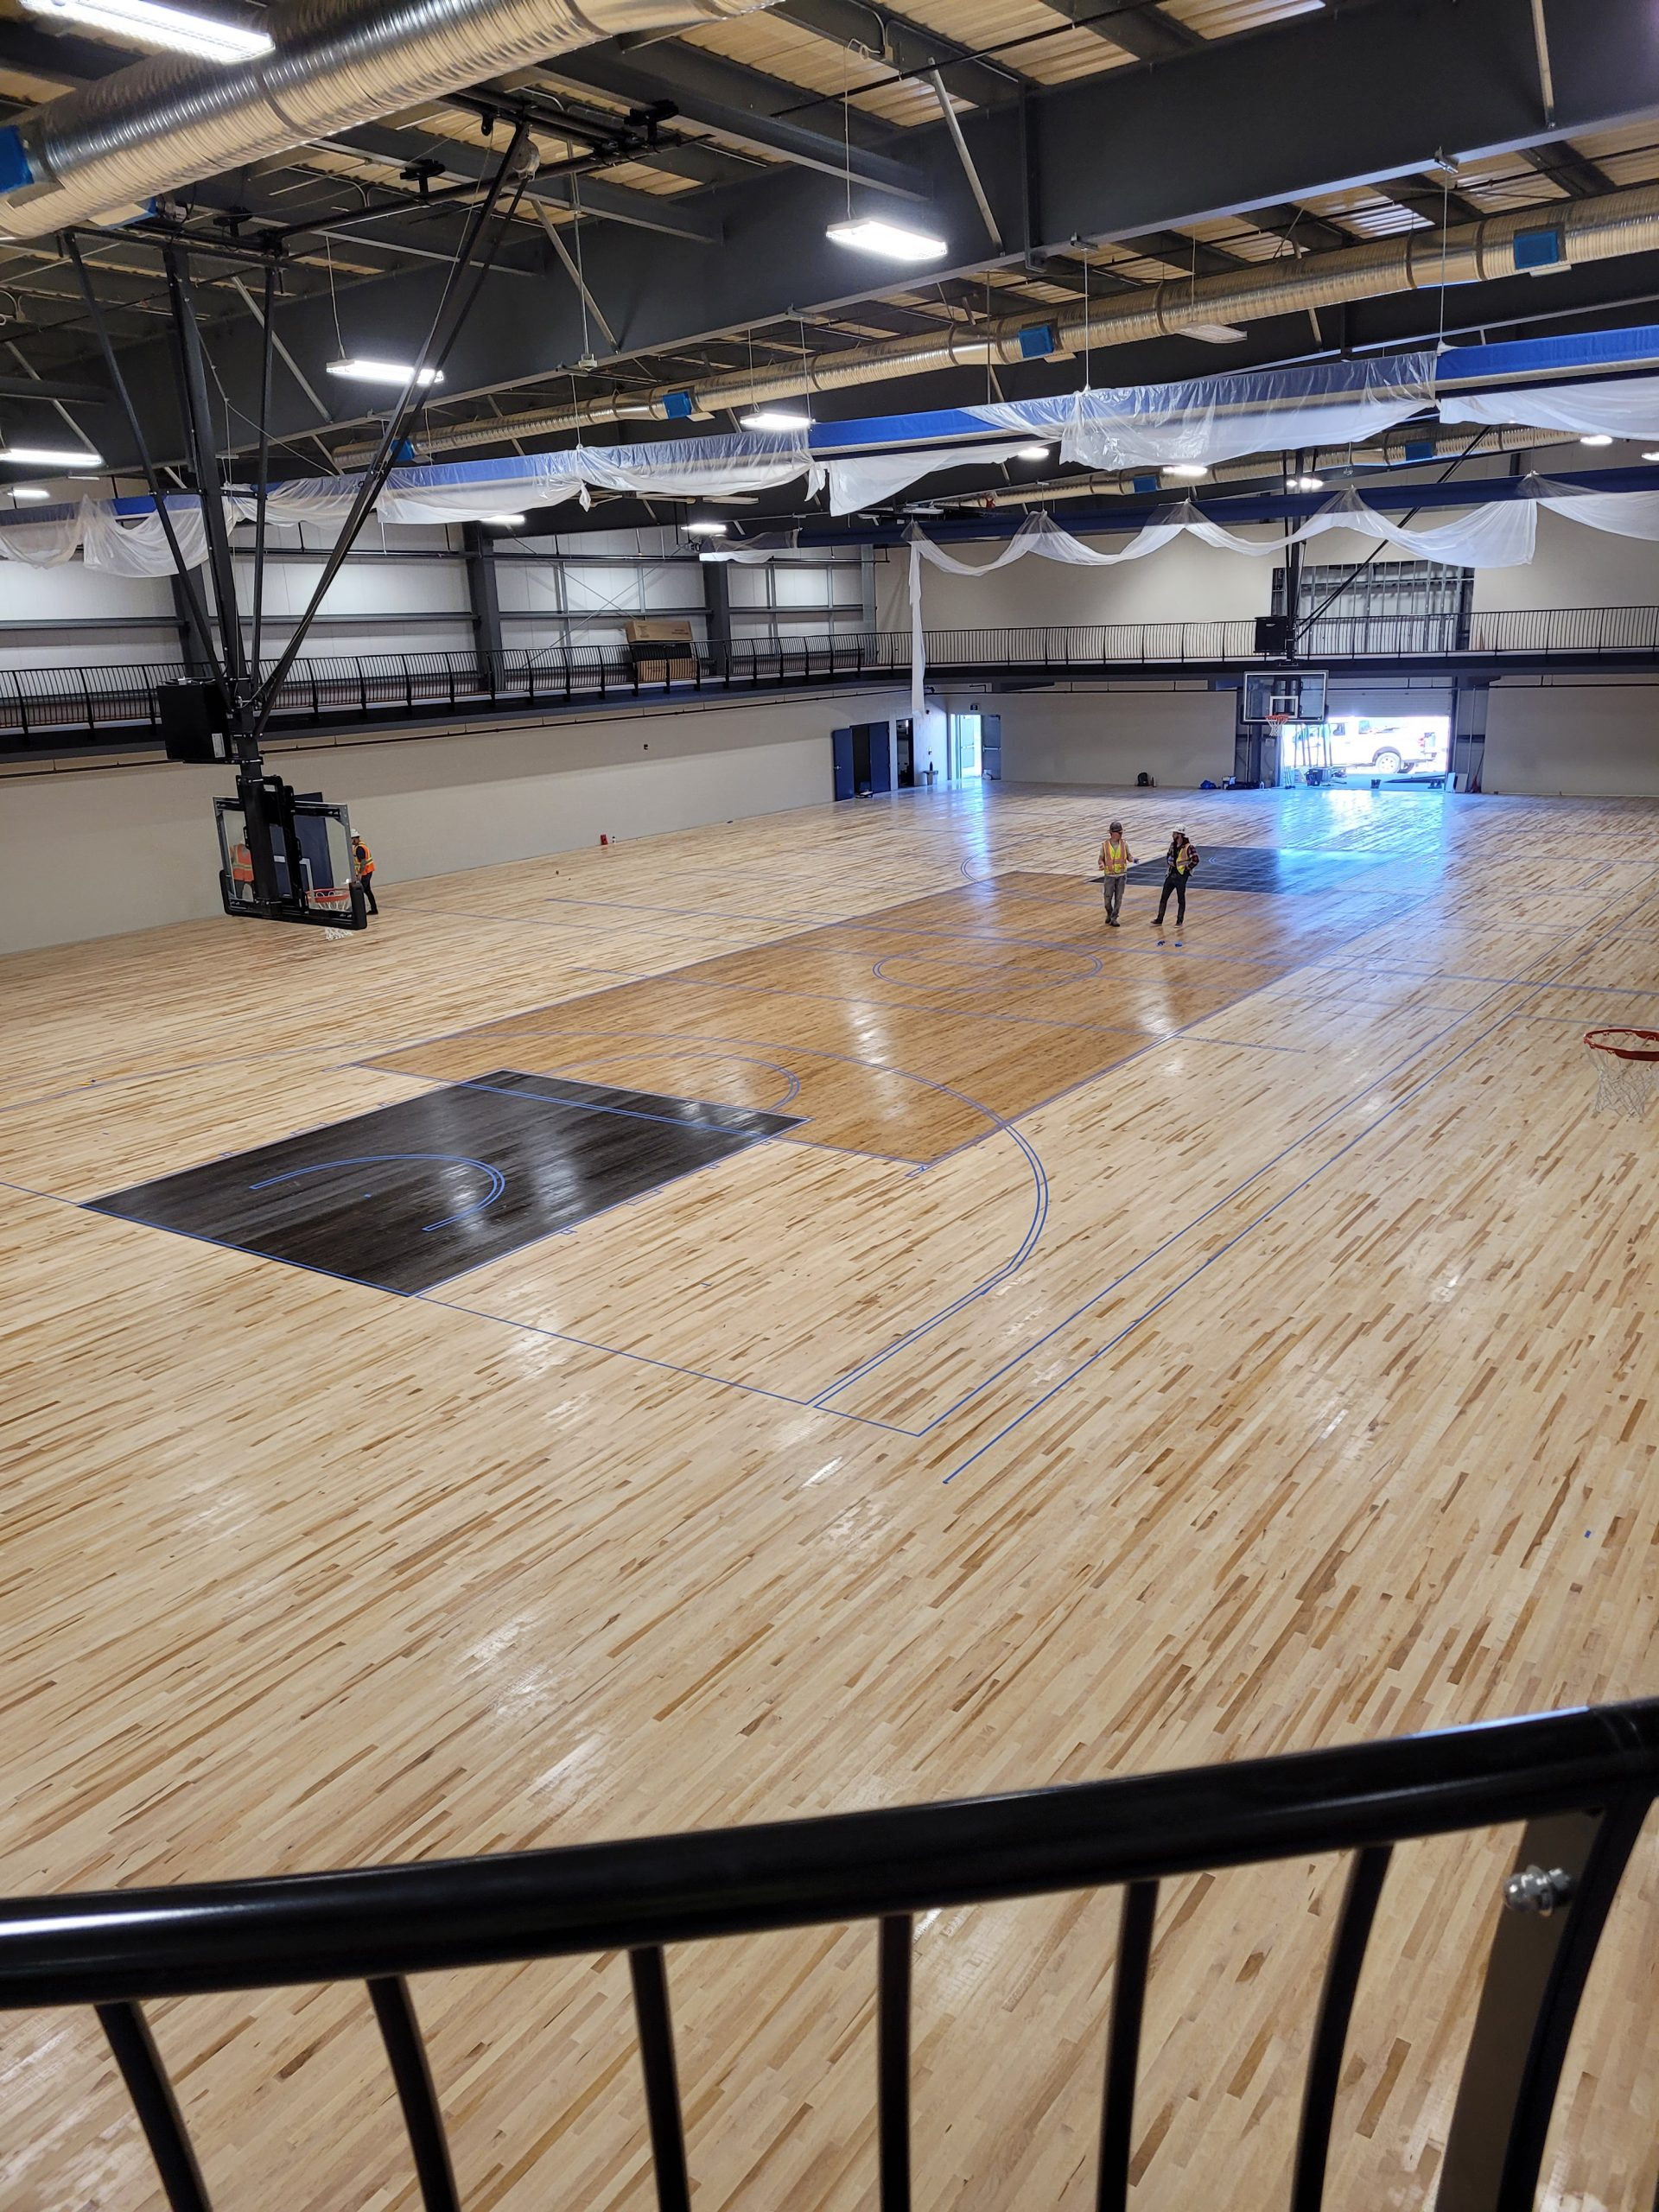 June 2021 - Fieldhouse Floor Stained!